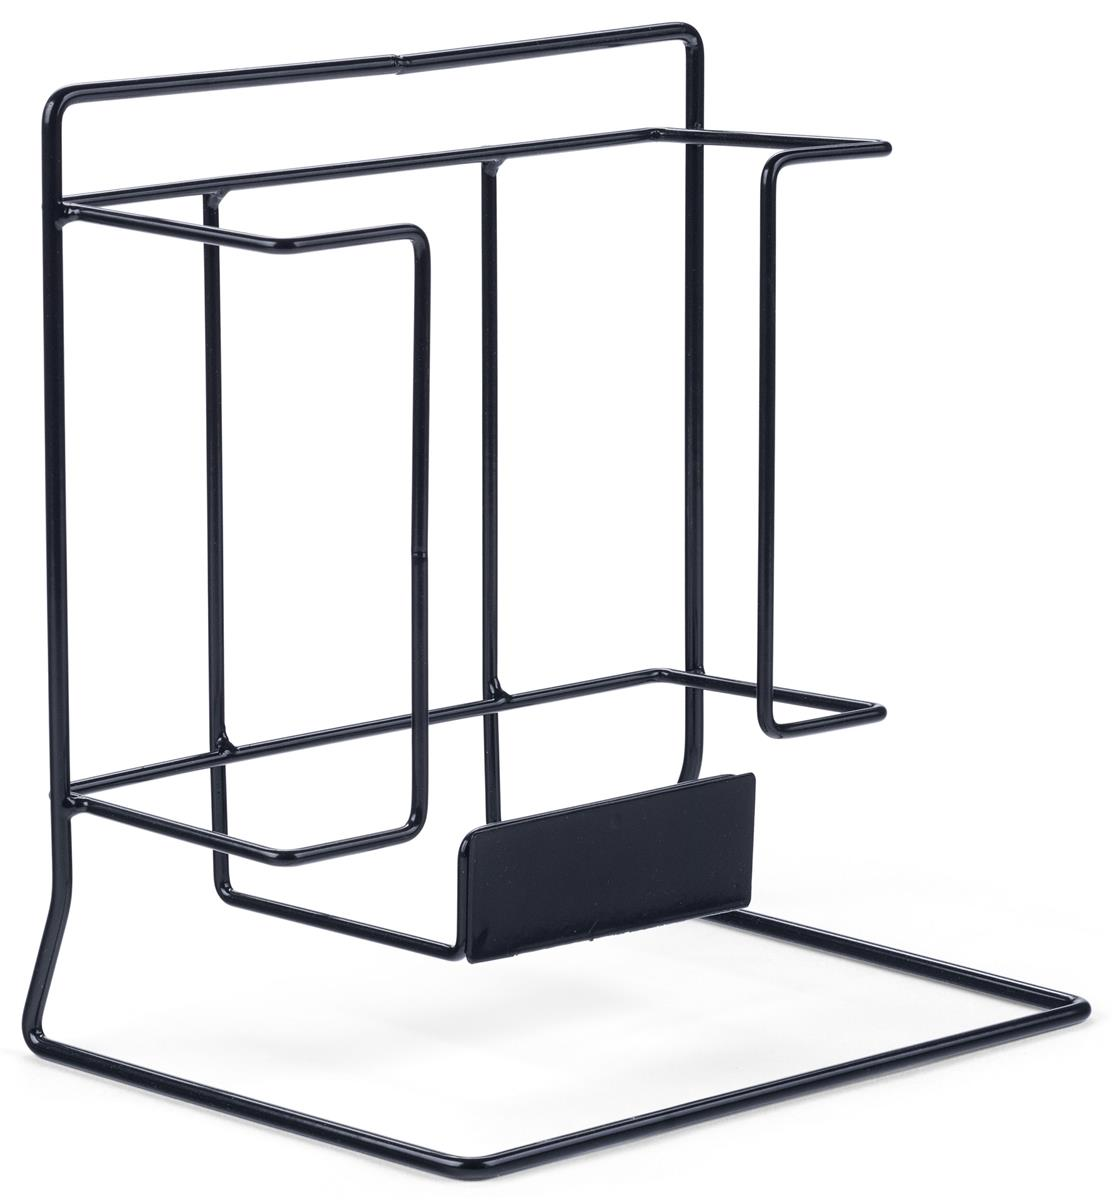 single wire magazine racks display stands for literature. Black Bedroom Furniture Sets. Home Design Ideas